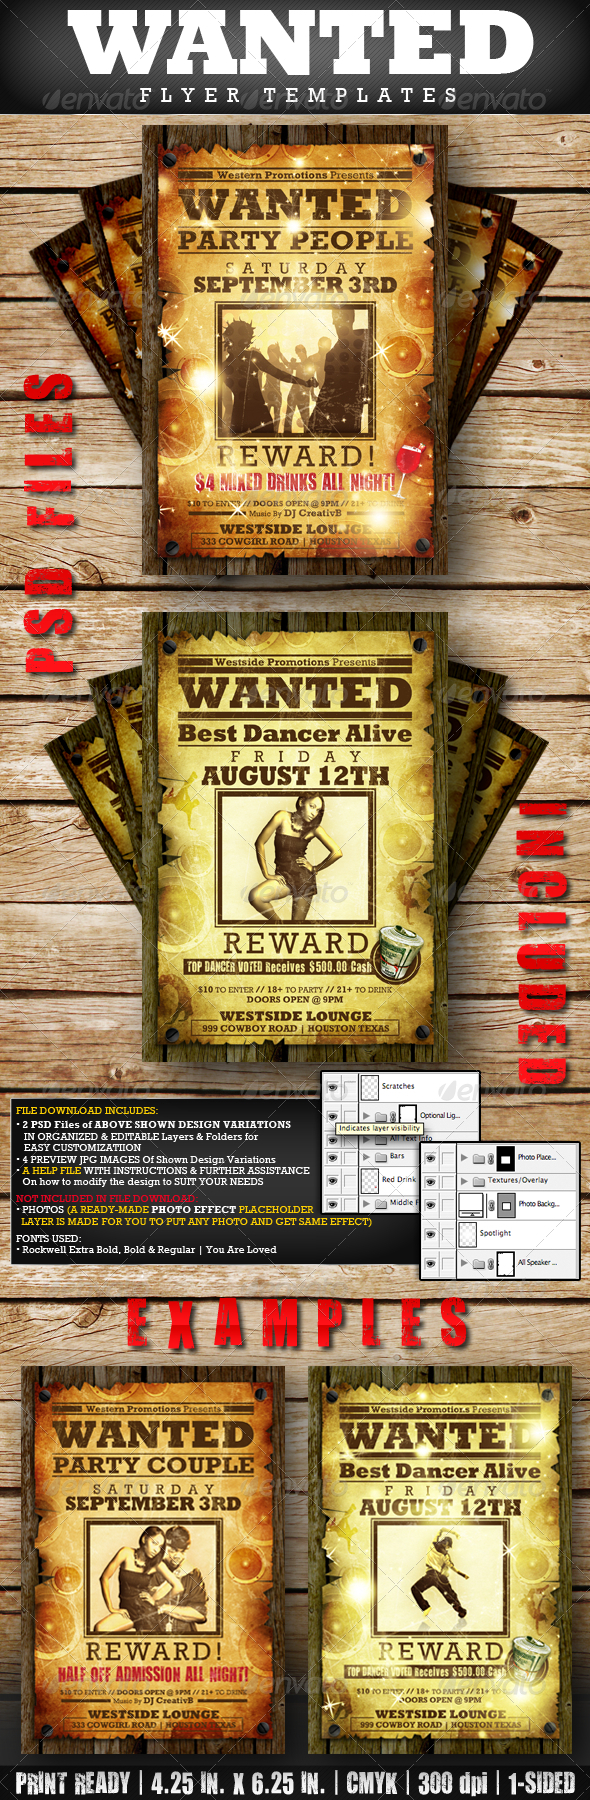 WANTED Flyer Templates by CreativB | GraphicRiver